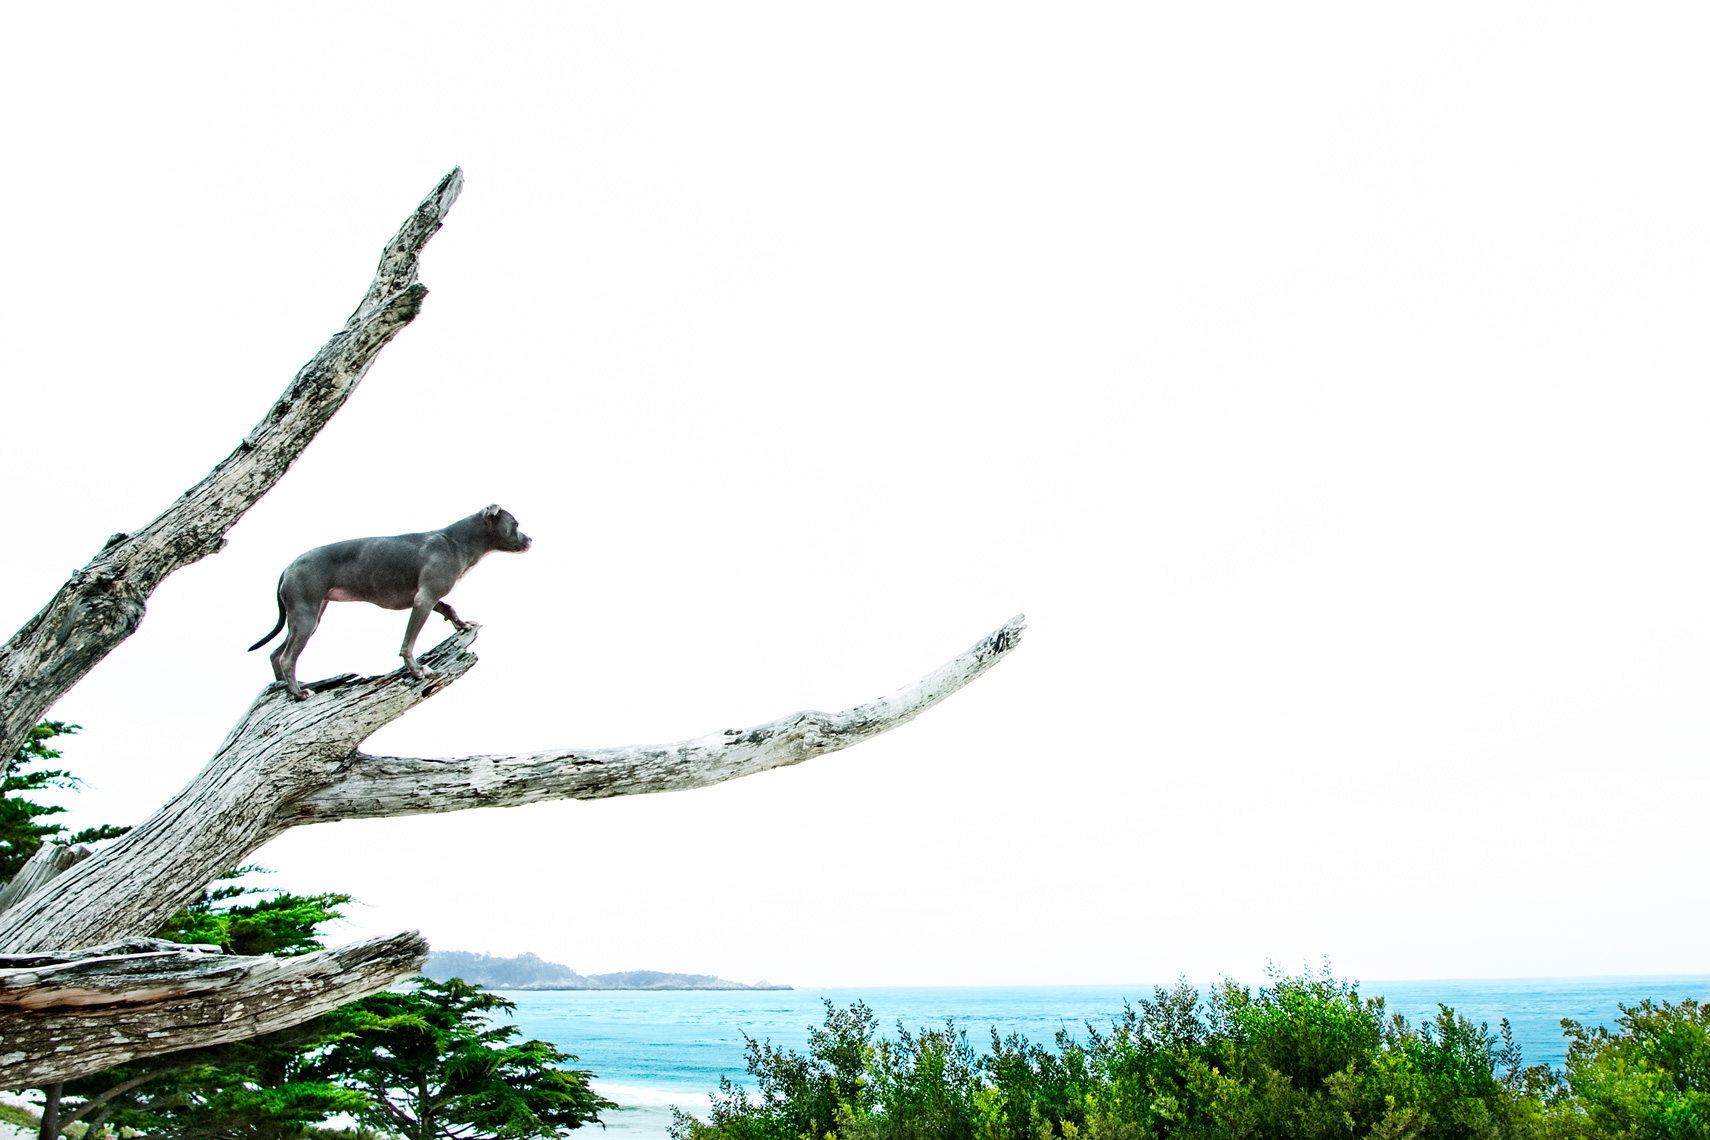 Los Angeles Dog Photography, Michael Brian, Blue Nose Pit Bull Kasha Fierce on branch in tree overlooking ocean Carmel, California